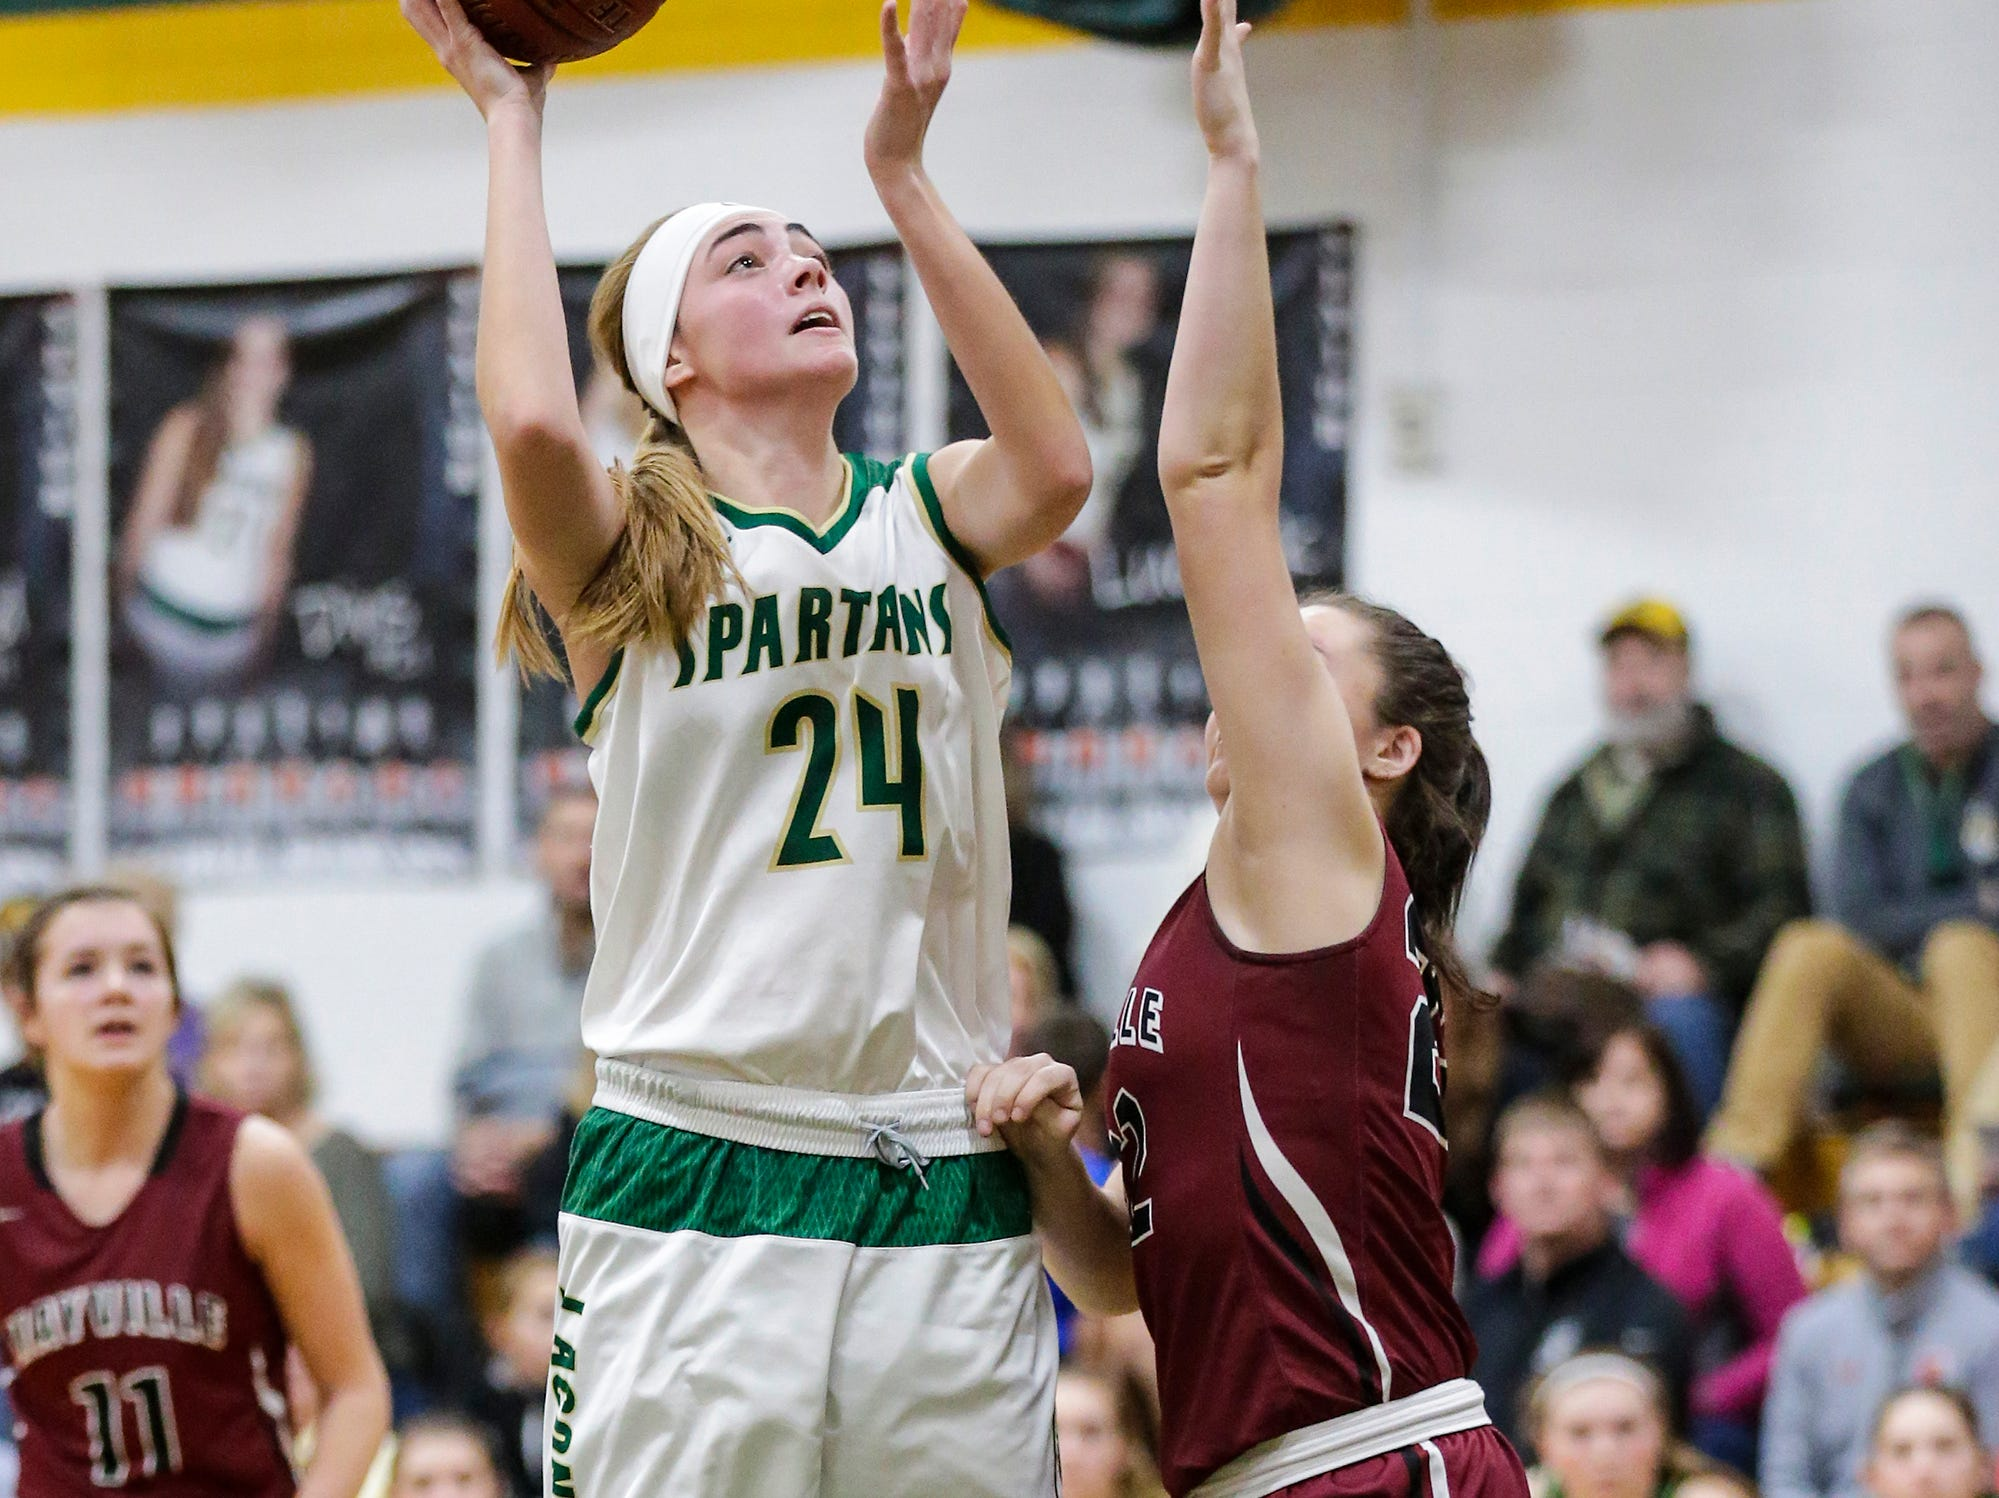 Laconia High School girls basketball's Maci Grade goes up for a basket against Mayville High School during their game Friday, November 30, 2018 in Rosendale. Doug Raflik/USA TODAY NETWORK-Wisconsin